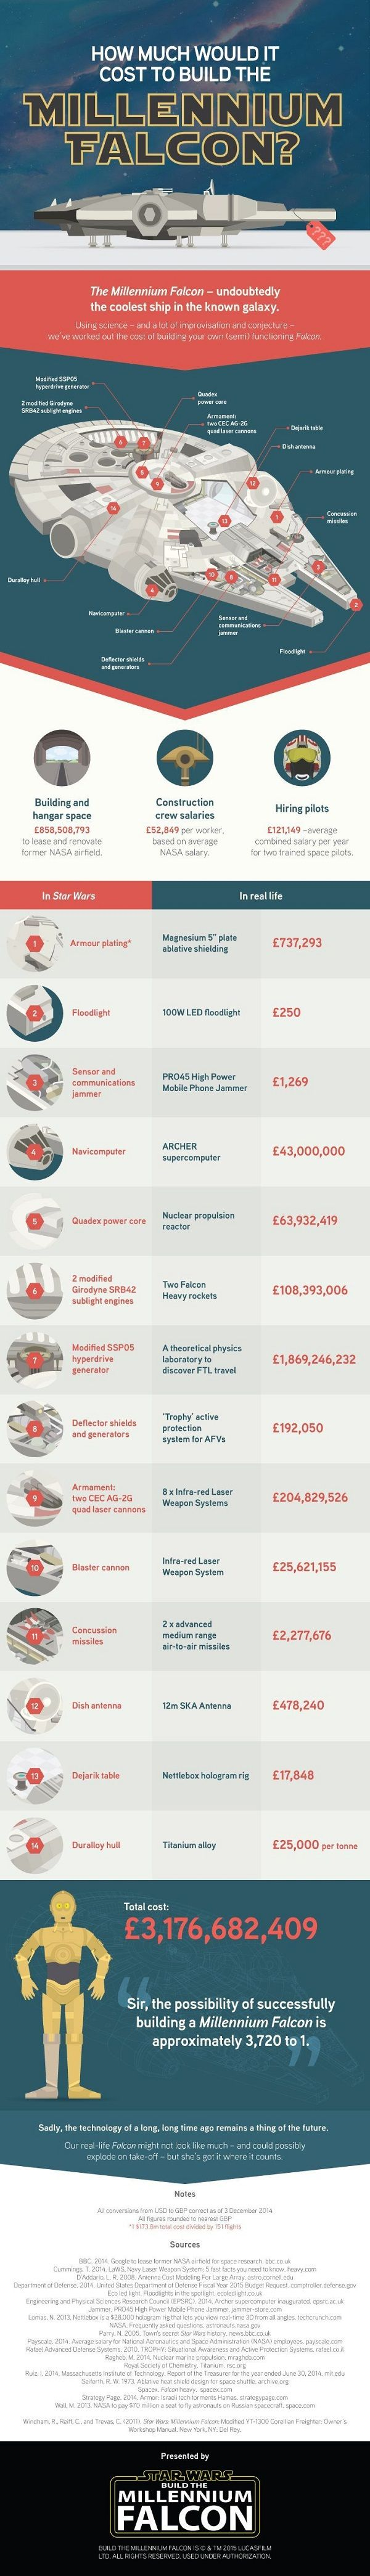 How much would it cost to build the Millennium Falcon?